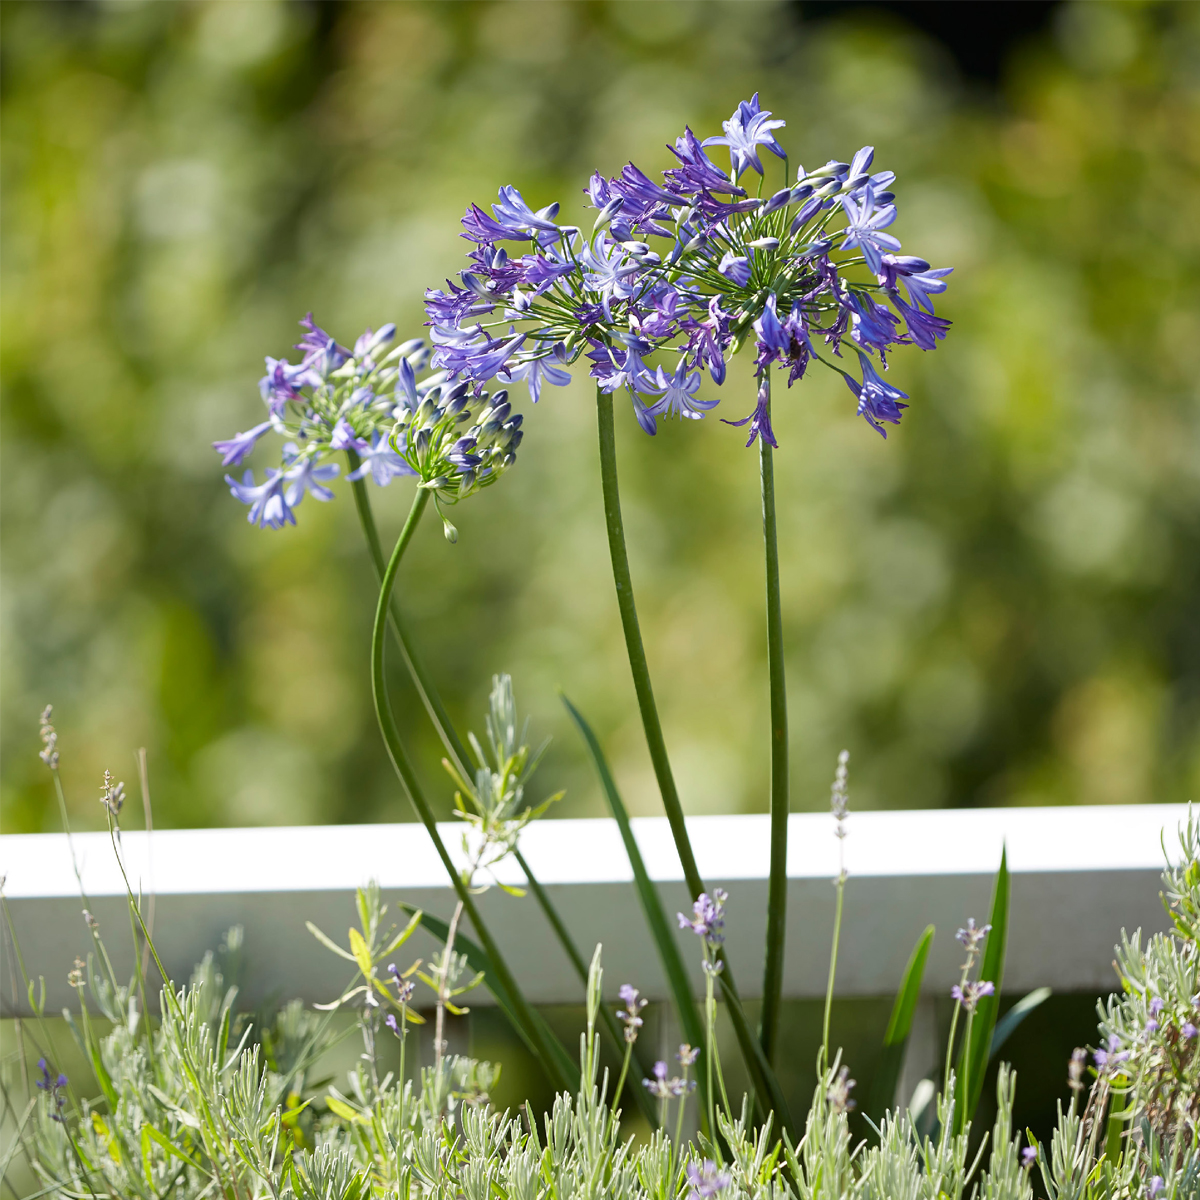 Agapanthus 'Northern Star' & Lavandula x intermedia